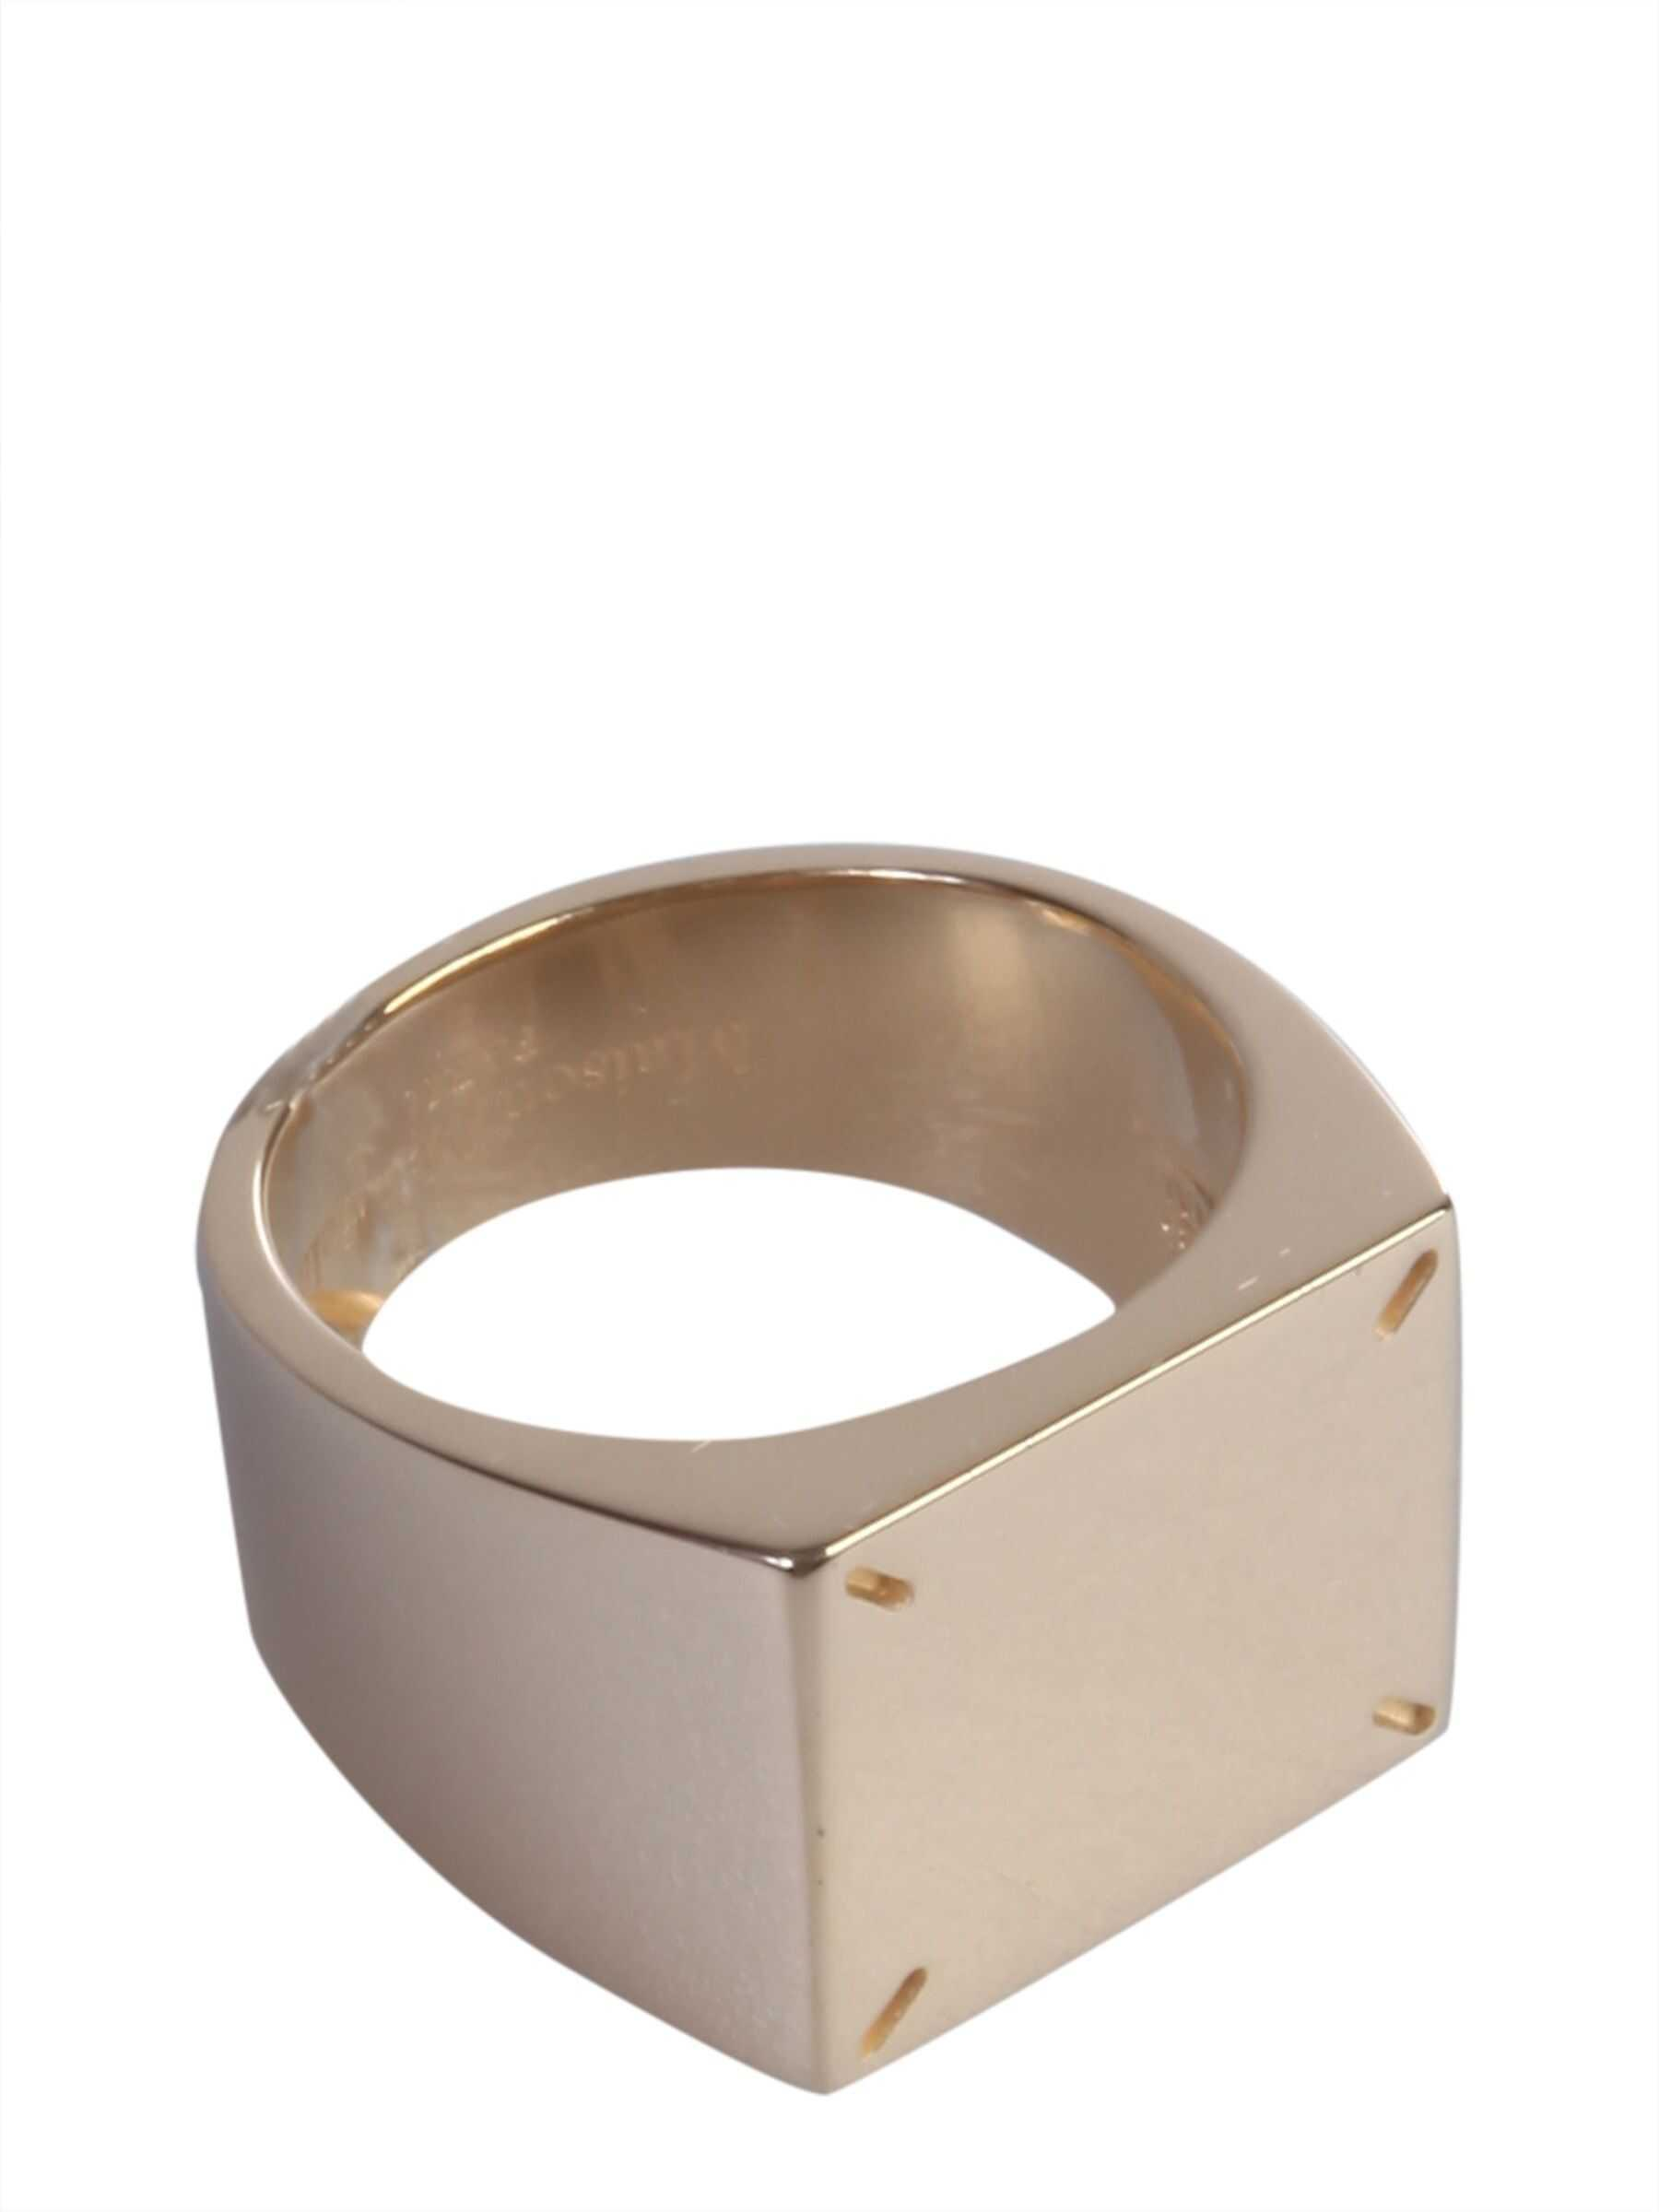 Maison Margiela Silver Ring GOLD